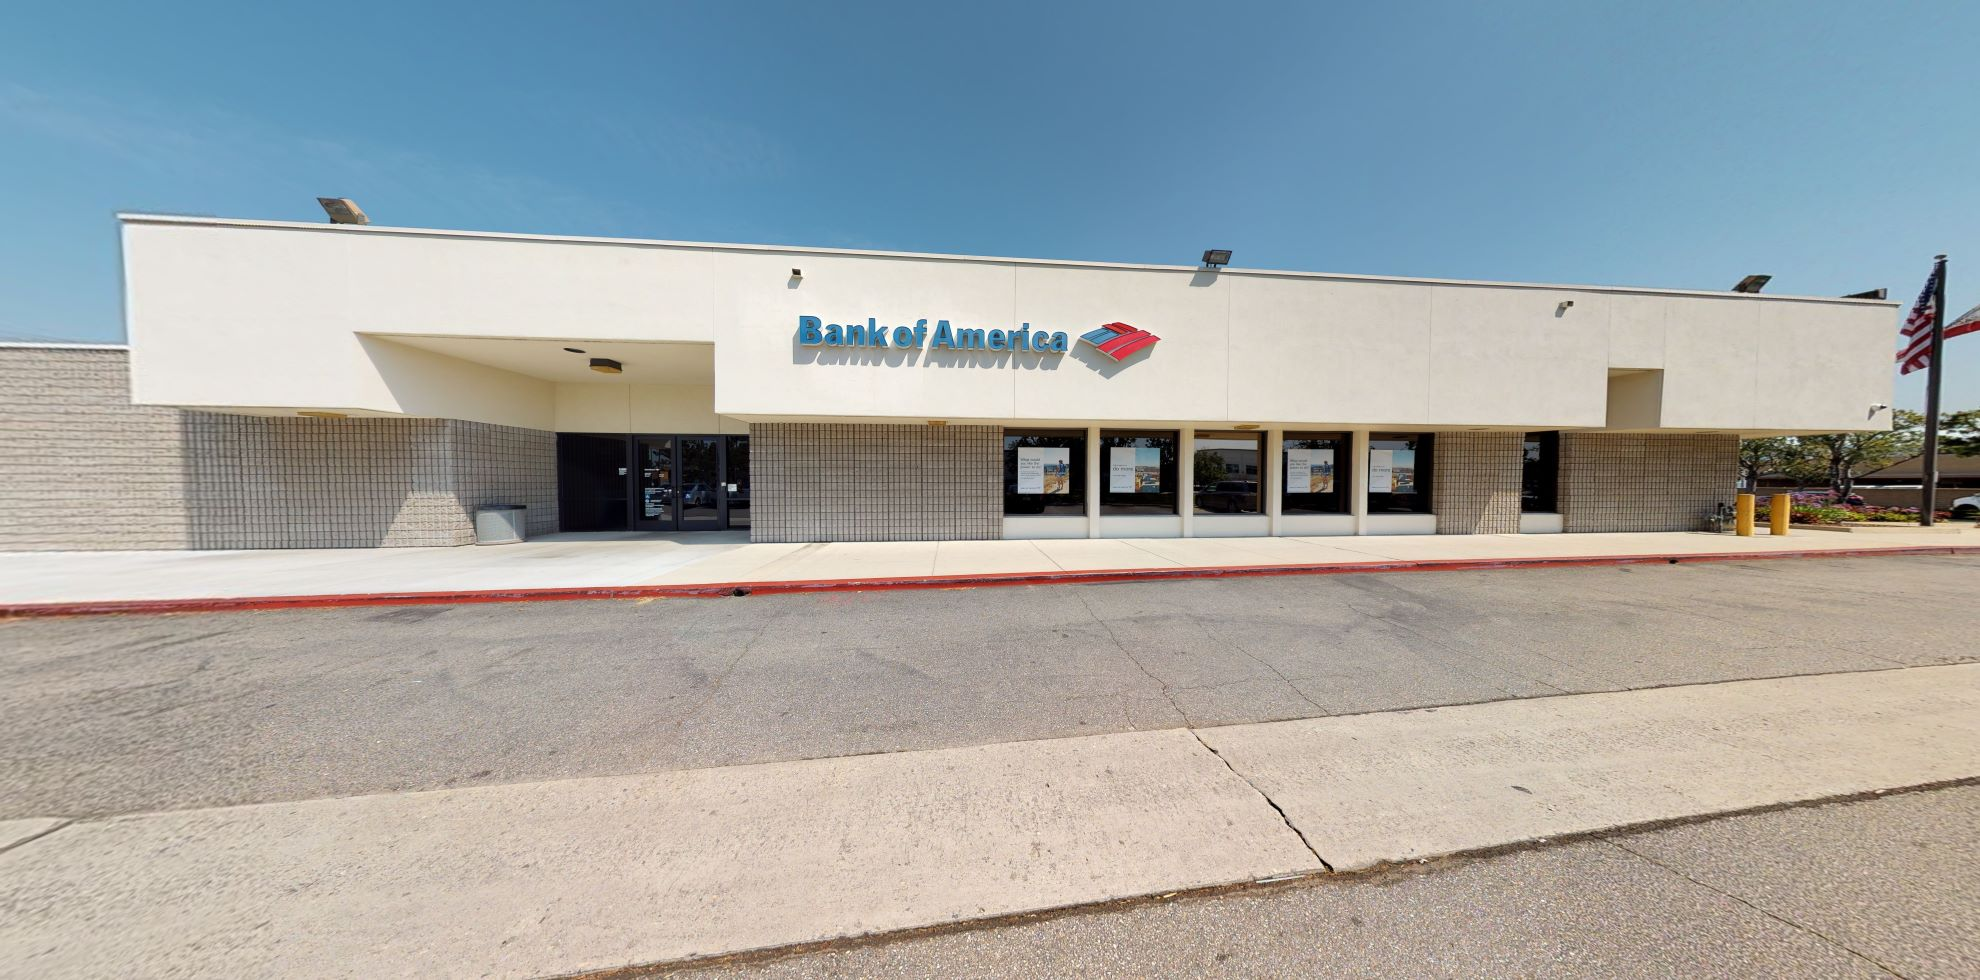 Bank of America financial center with drive-thru ATM | 200 S Lemon Ave, Walnut, CA 91789